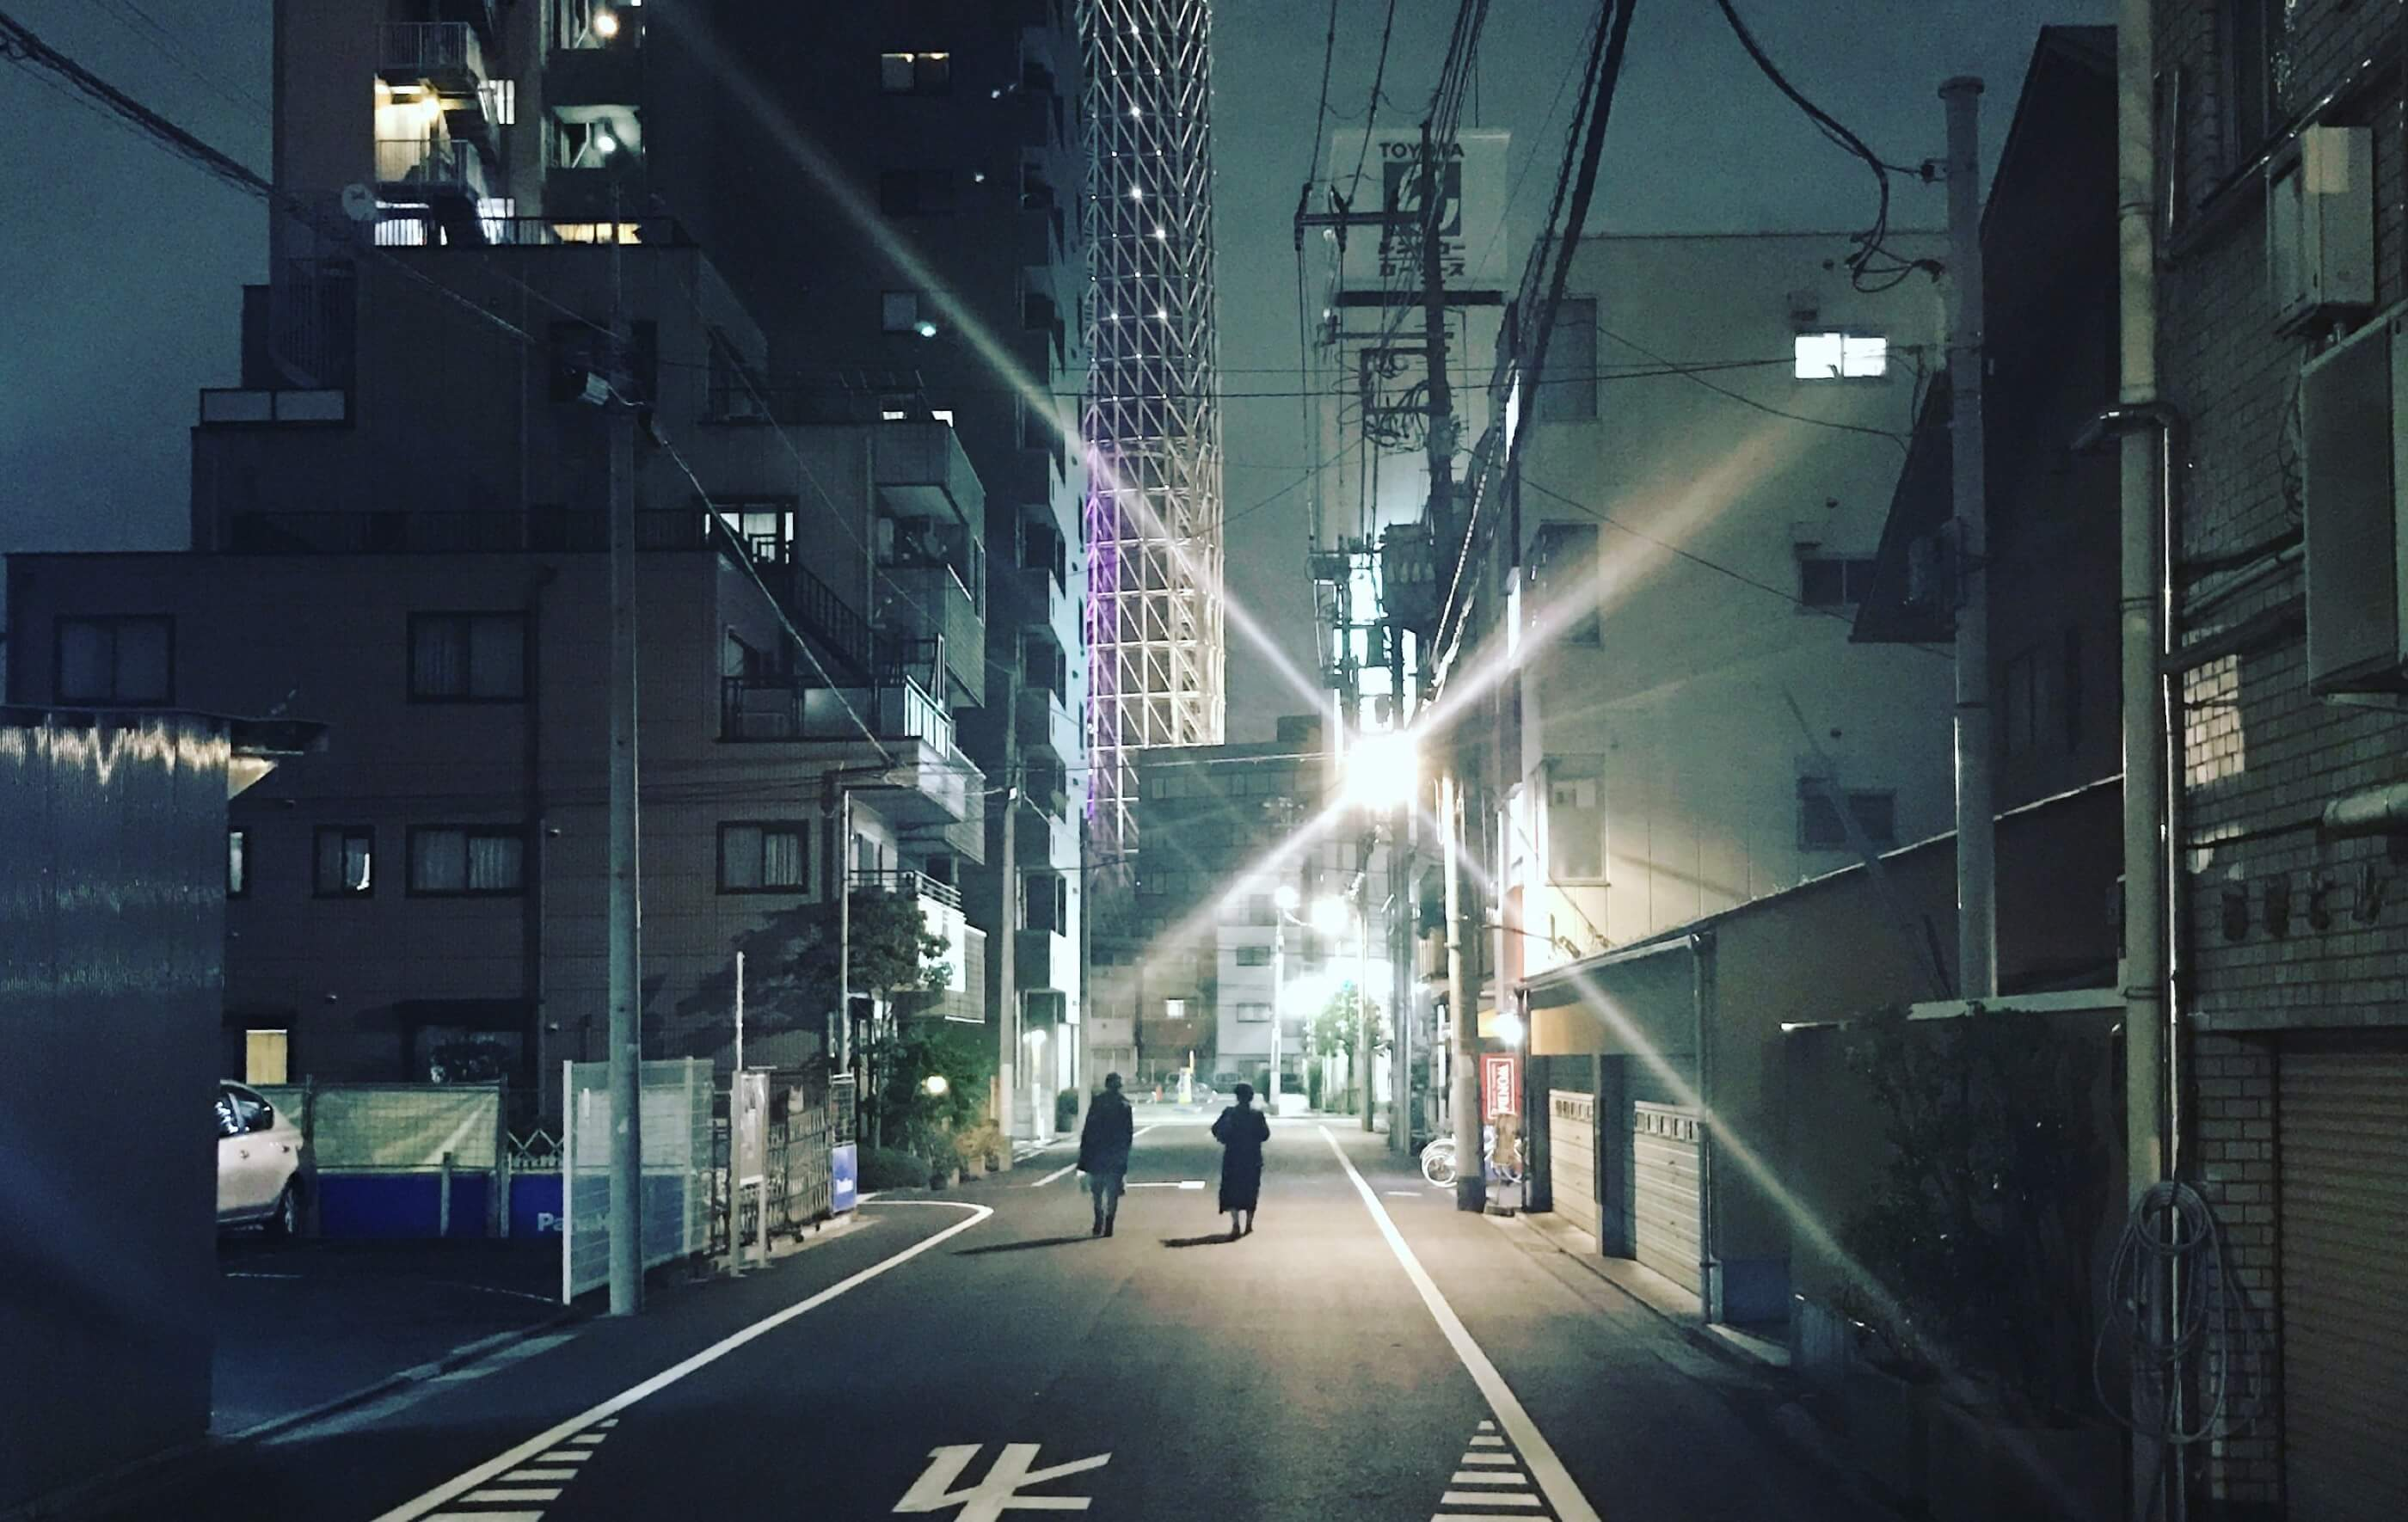 The end of my <span>Tokyo </span>photo report